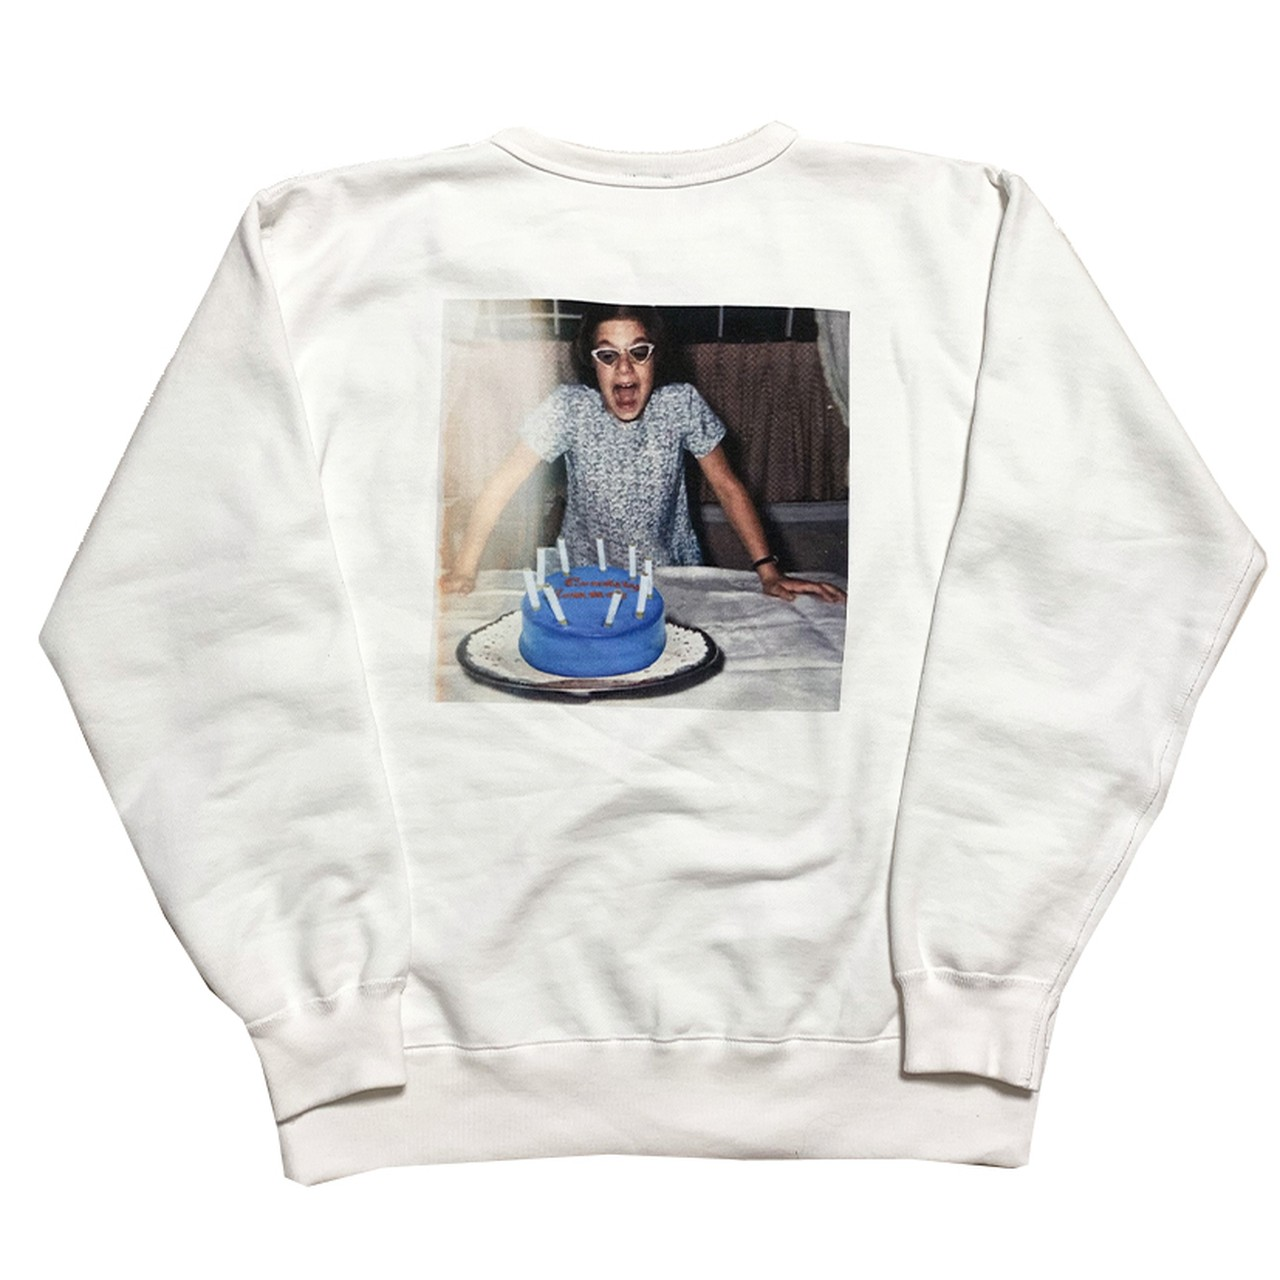 【Crudely Hommes】Girl with Cake Heavy Weight Sweat Tops